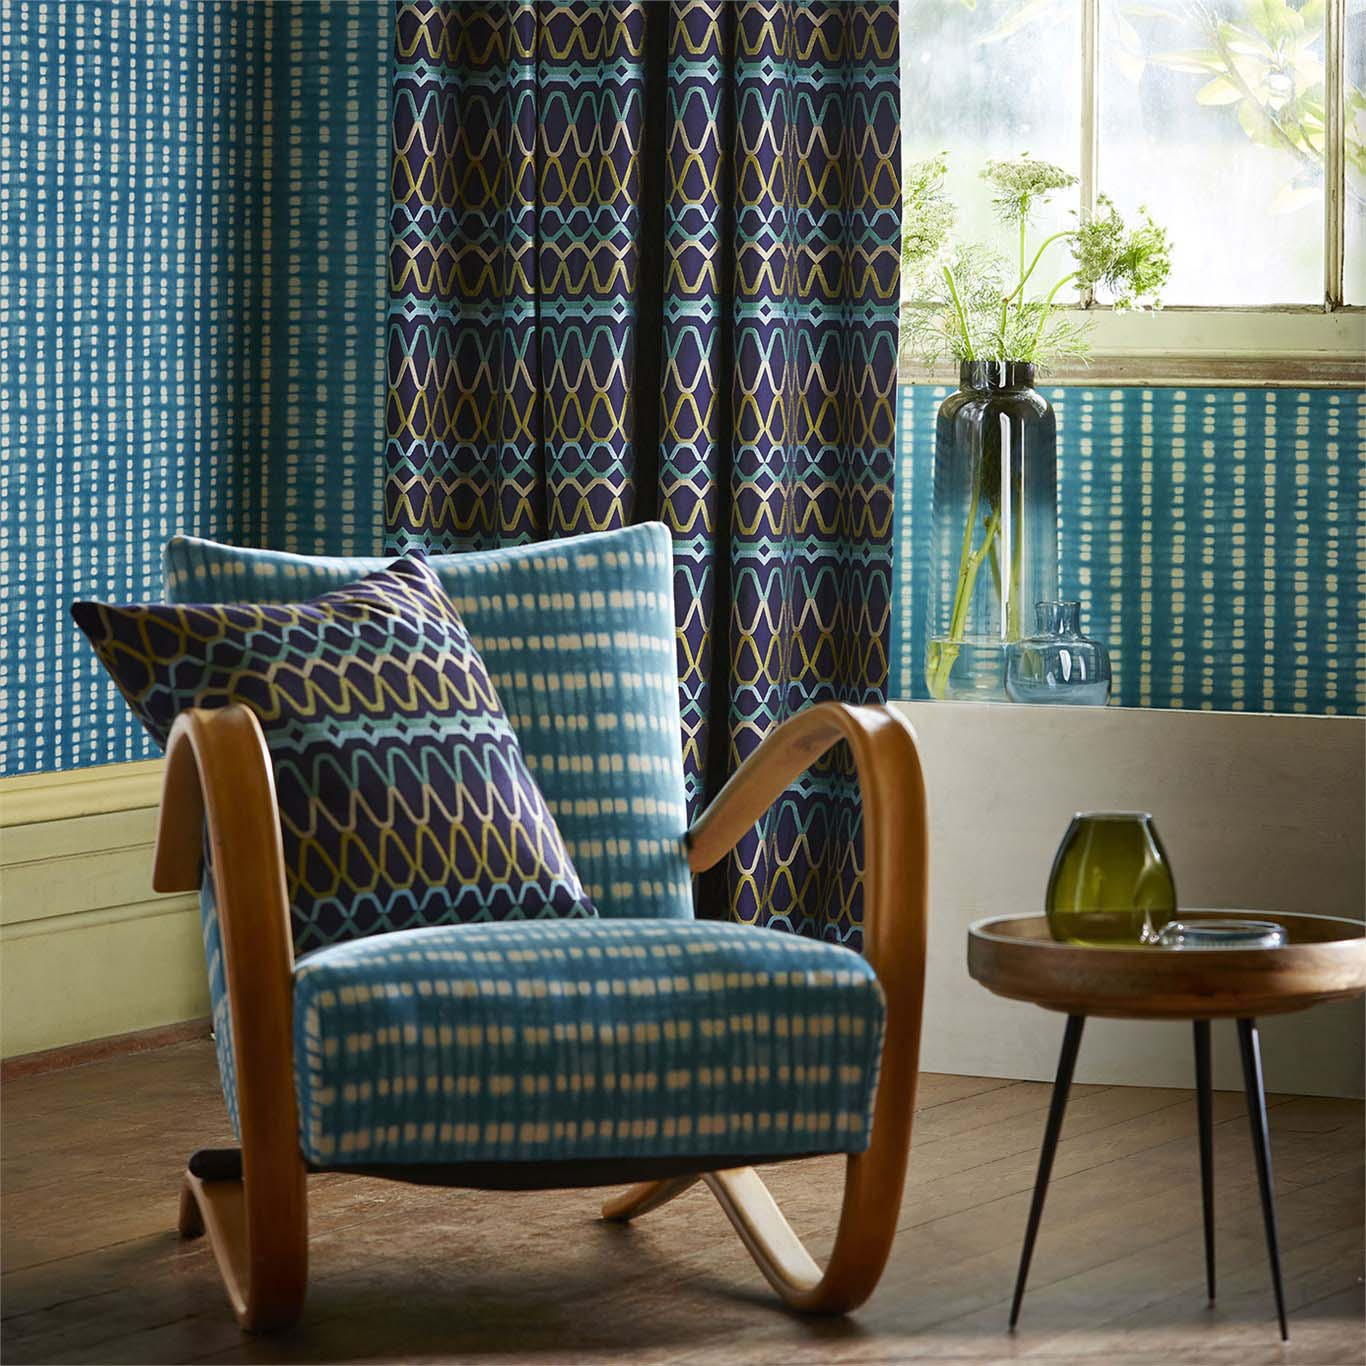 Upholstery chair and cushions